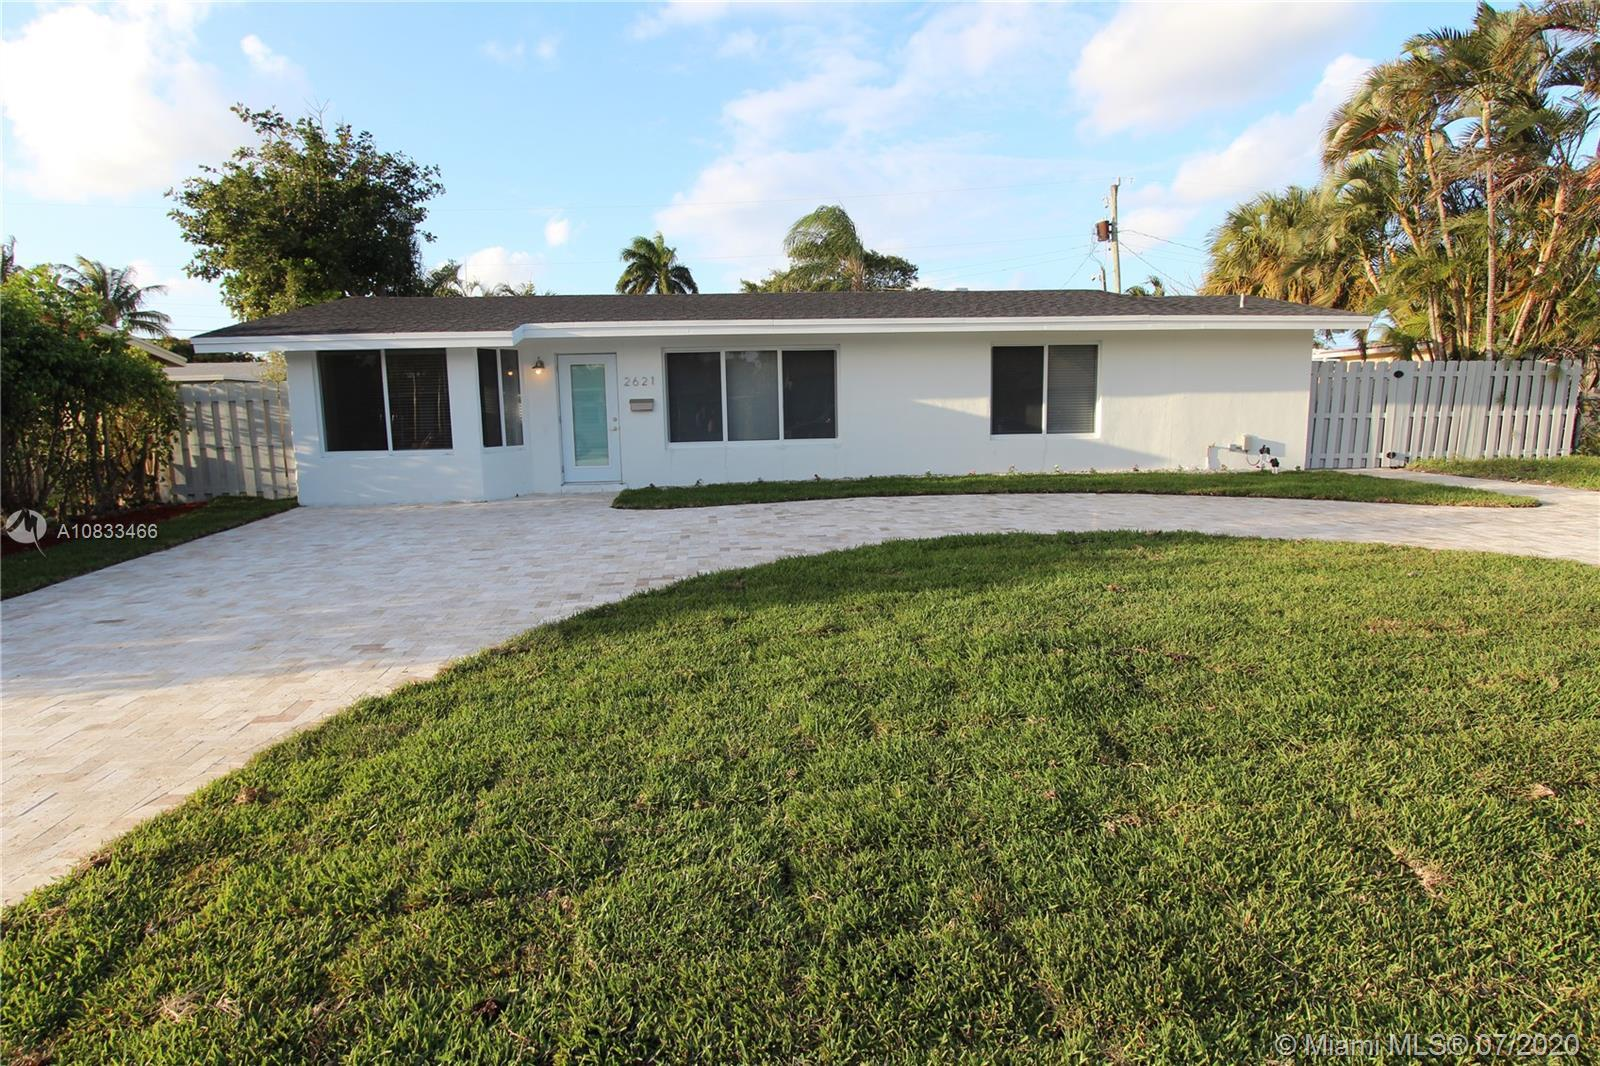 "FULLY UPDATED AND REMODELED HOUSE IN DESIRED CONNOR ESTATES, EAST OF FEDERAL HWY. HOUSE HAS A ""COMFY"